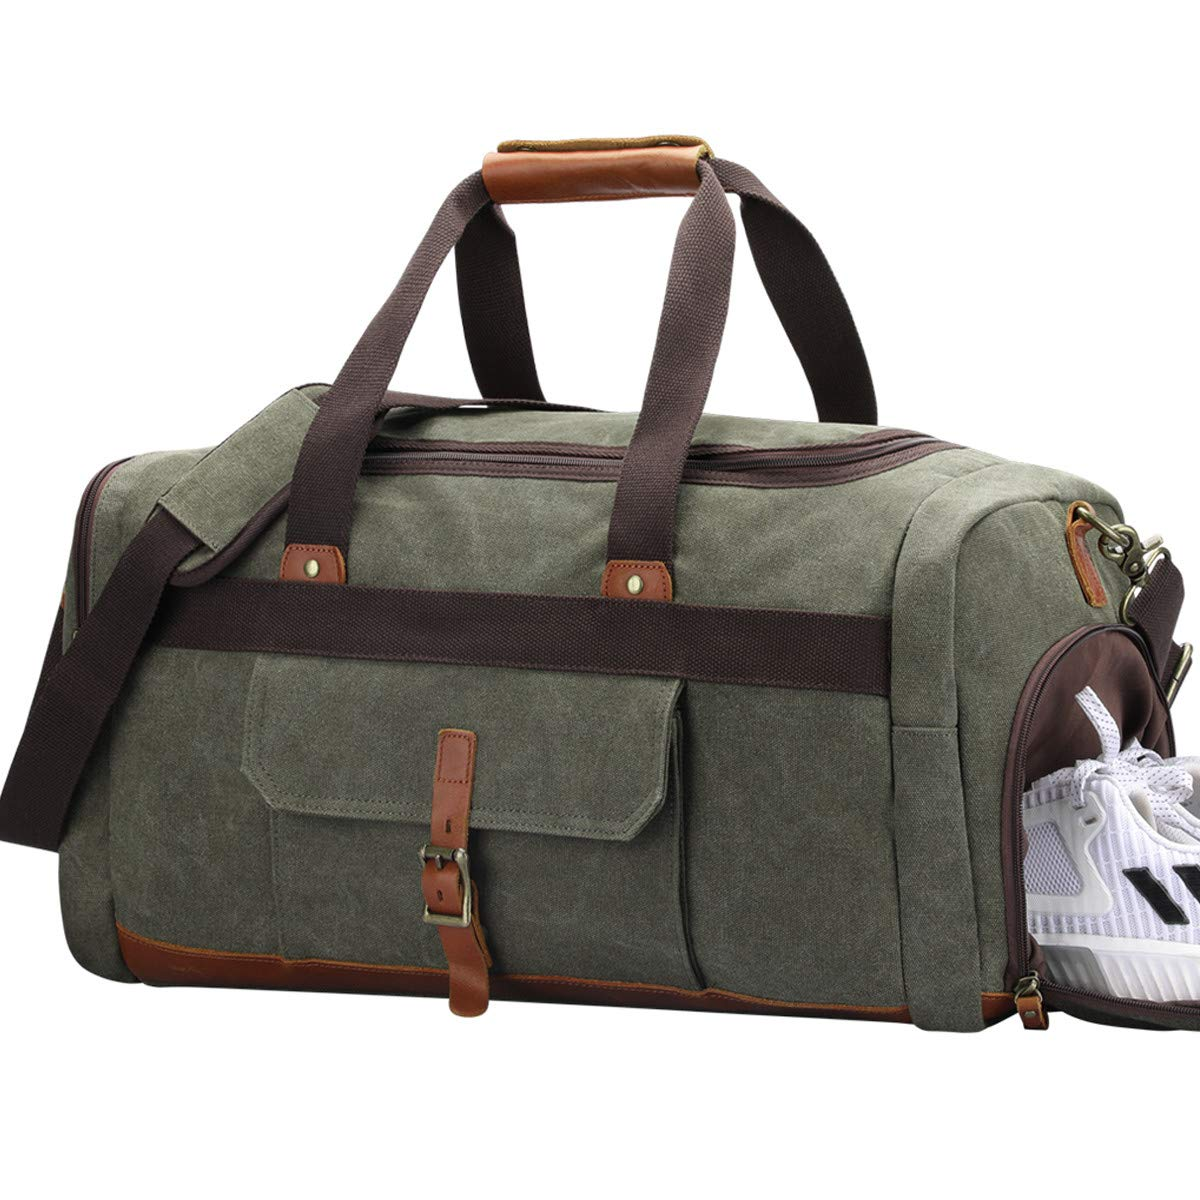 816f08b5cb S-ZONE Vintage Canvas Geniune Leather Trim Travel Tote Duffel Bag with  Shoes Pouch